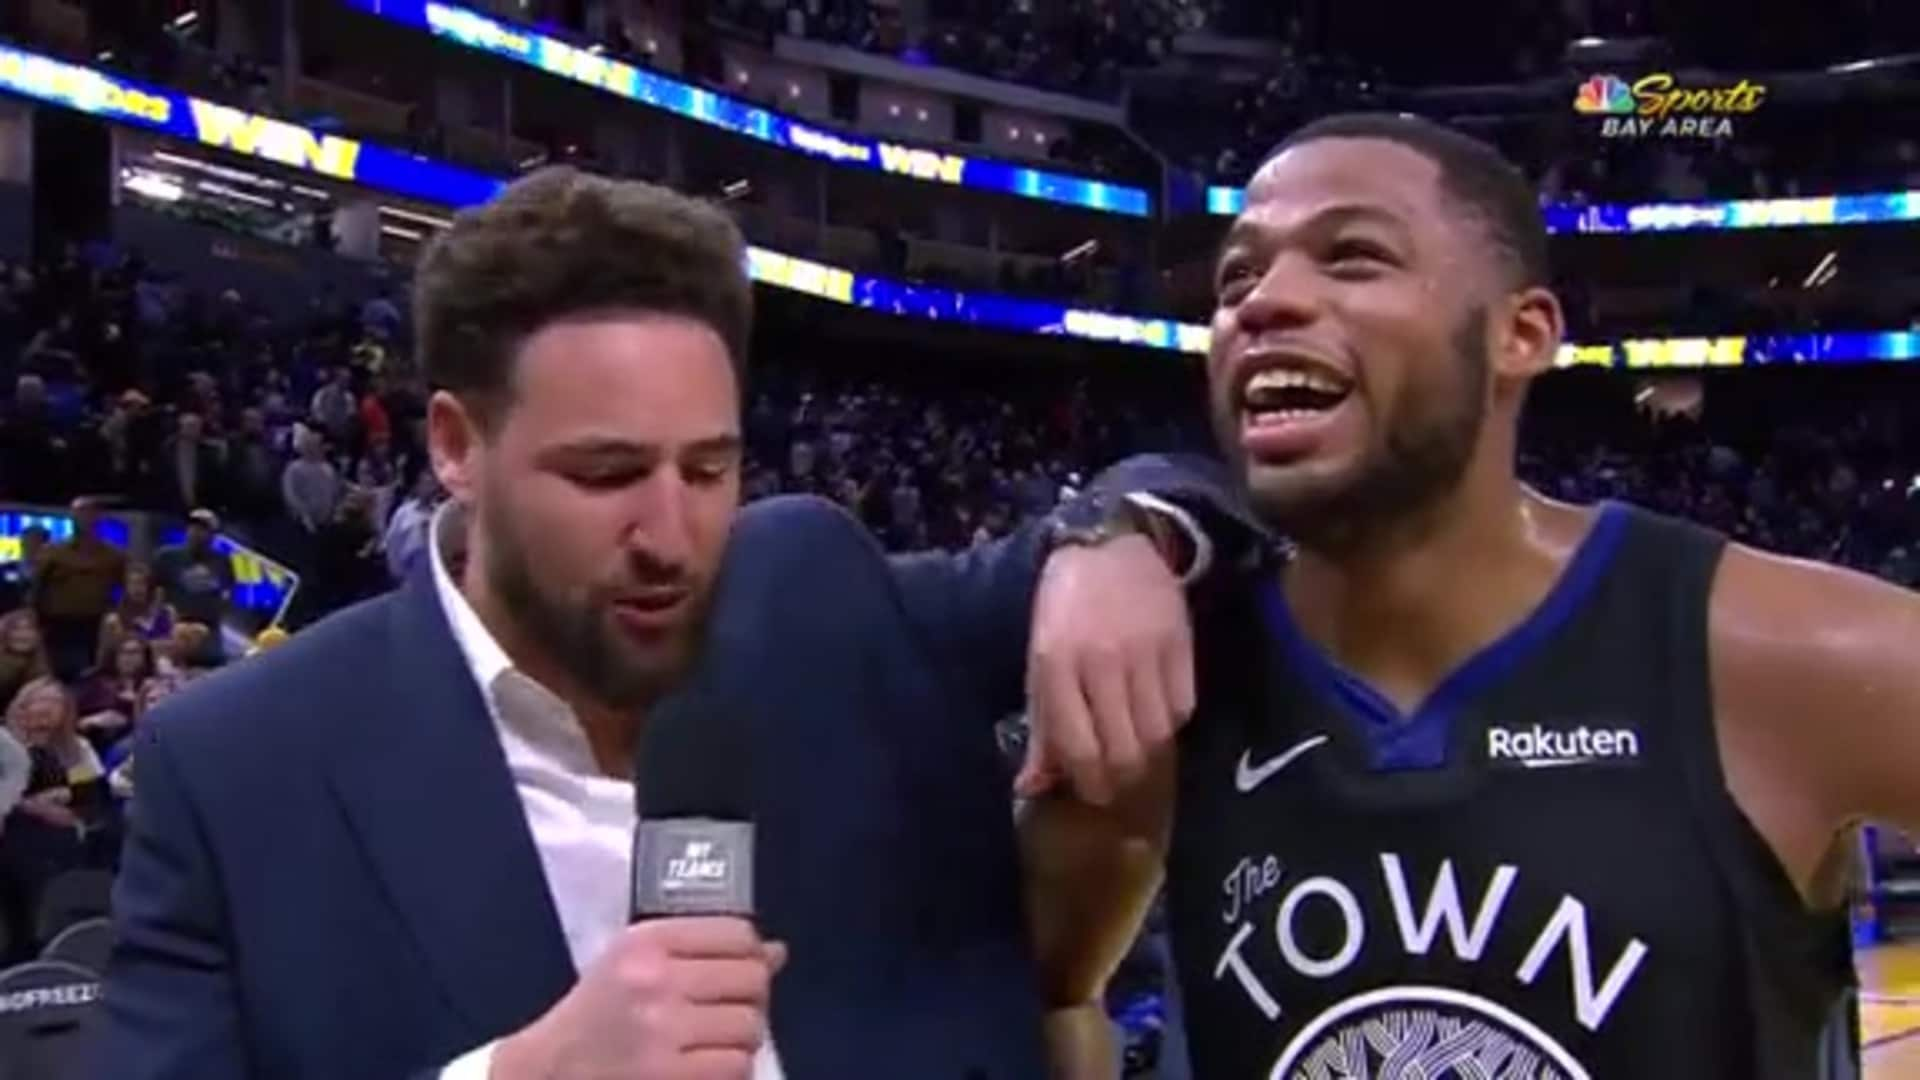 Postgame Warriors Talk: Klay Interviews Omari Spellman (NBCSBA) - 11/27/19